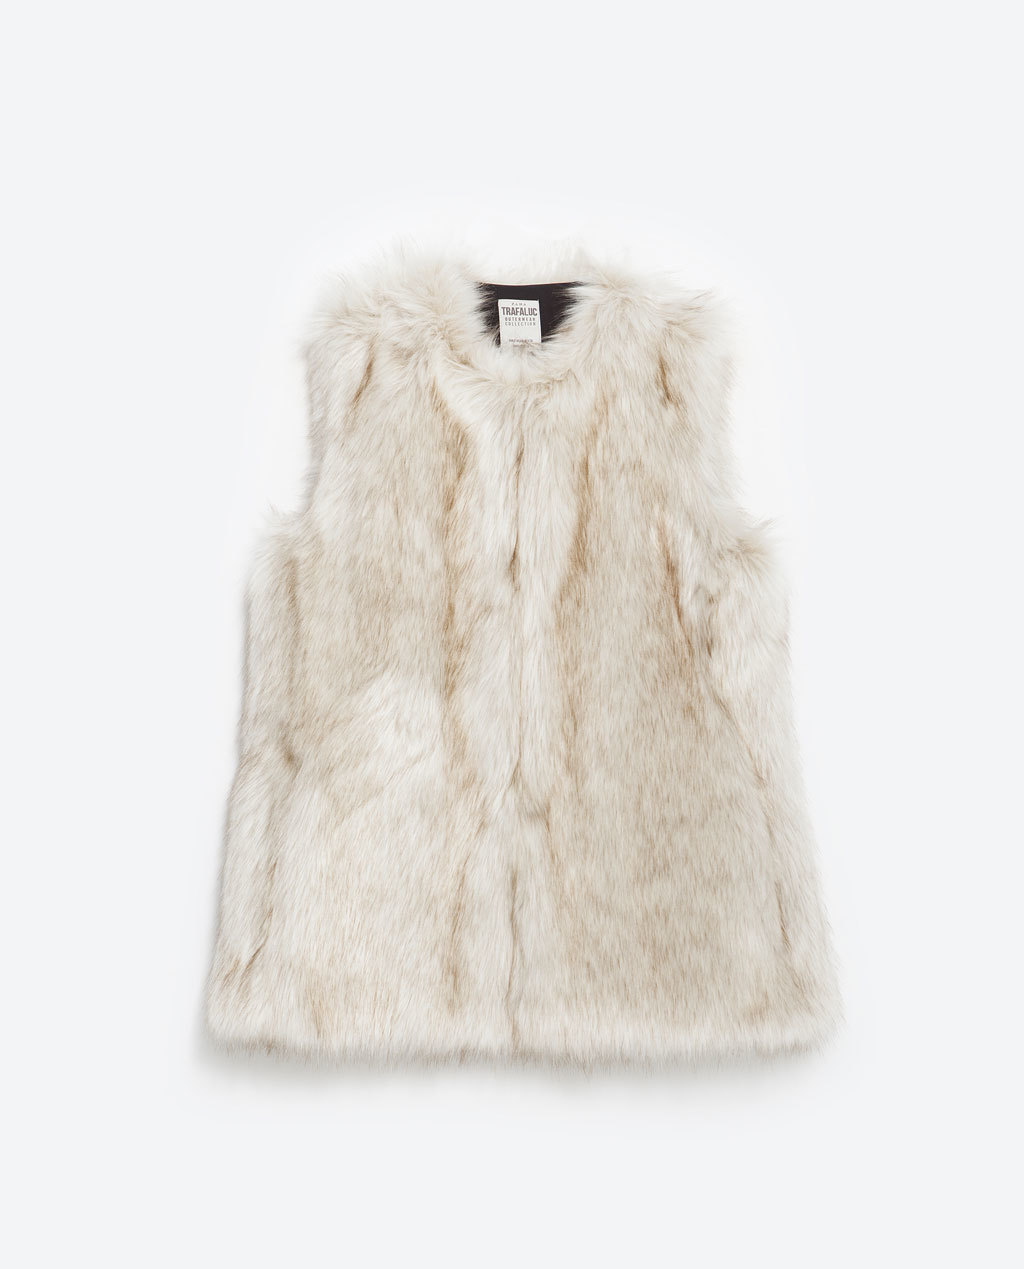 Short Faux Fur Waistcoat - neckline: round neck; pattern: plain; sleeve style: sleeveless; style: gilet; predominant colour: ivory/cream; occasions: casual, evening, creative work; length: standard; fibres: acrylic - mix; fit: standard fit; sleeve length: sleeveless; texture group: fur; pattern type: fabric; embellishment: fur; season: a/w 2015; wardrobe: highlight